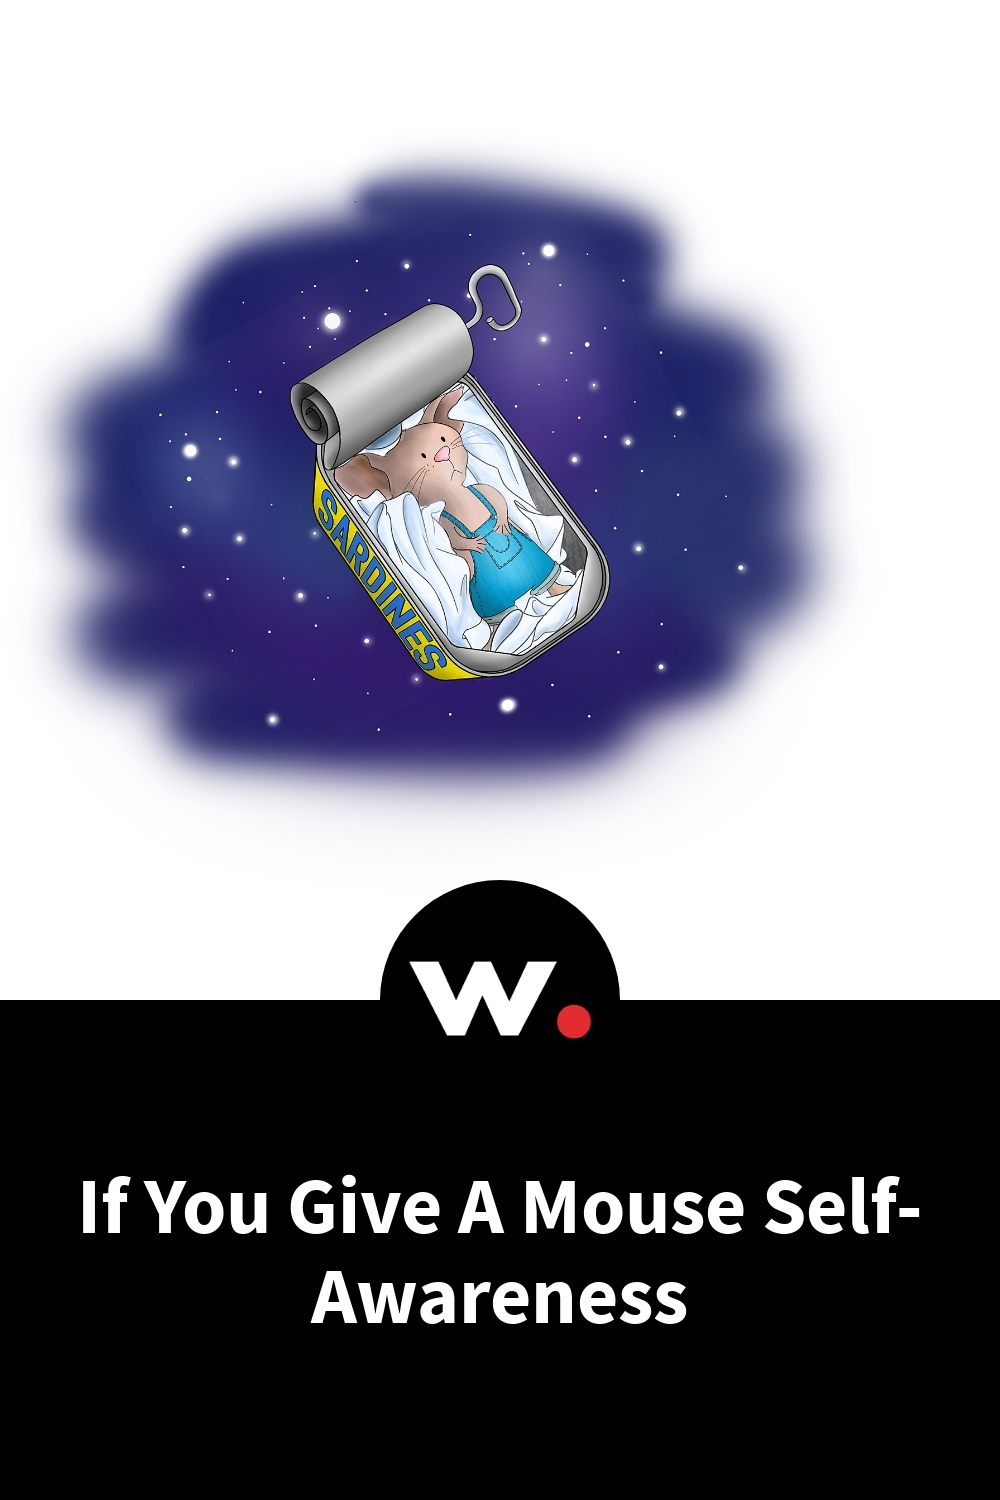 If You Give A Mouse Self-Awareness